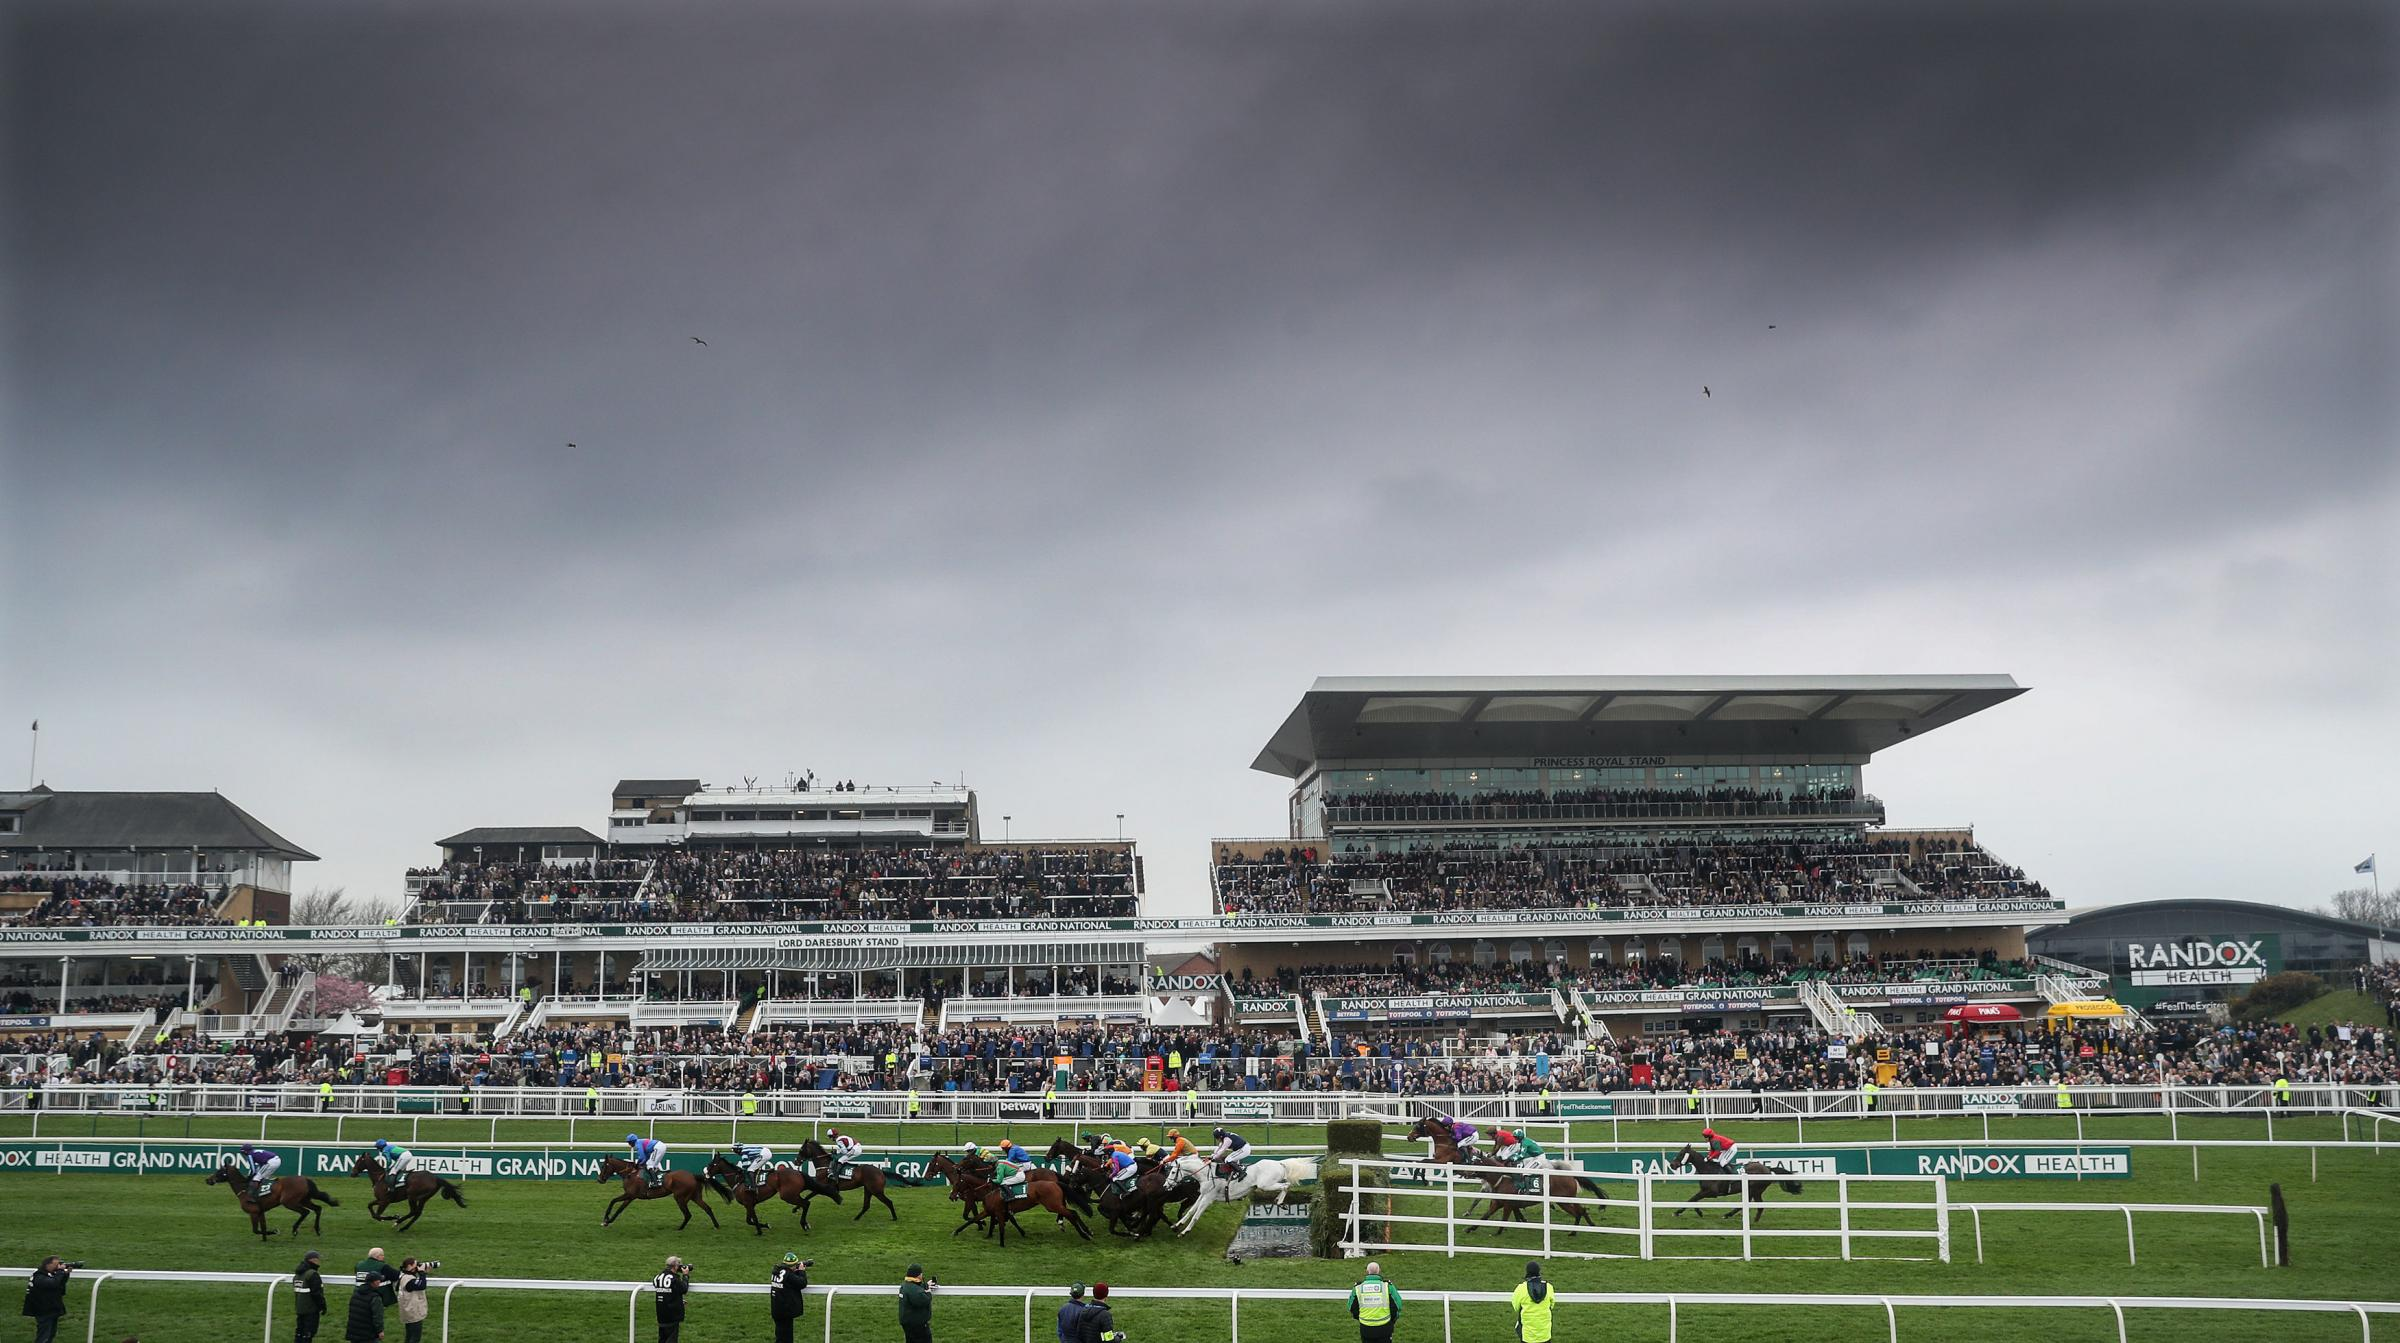 Grand National: Press tipster assesses the runners and riders